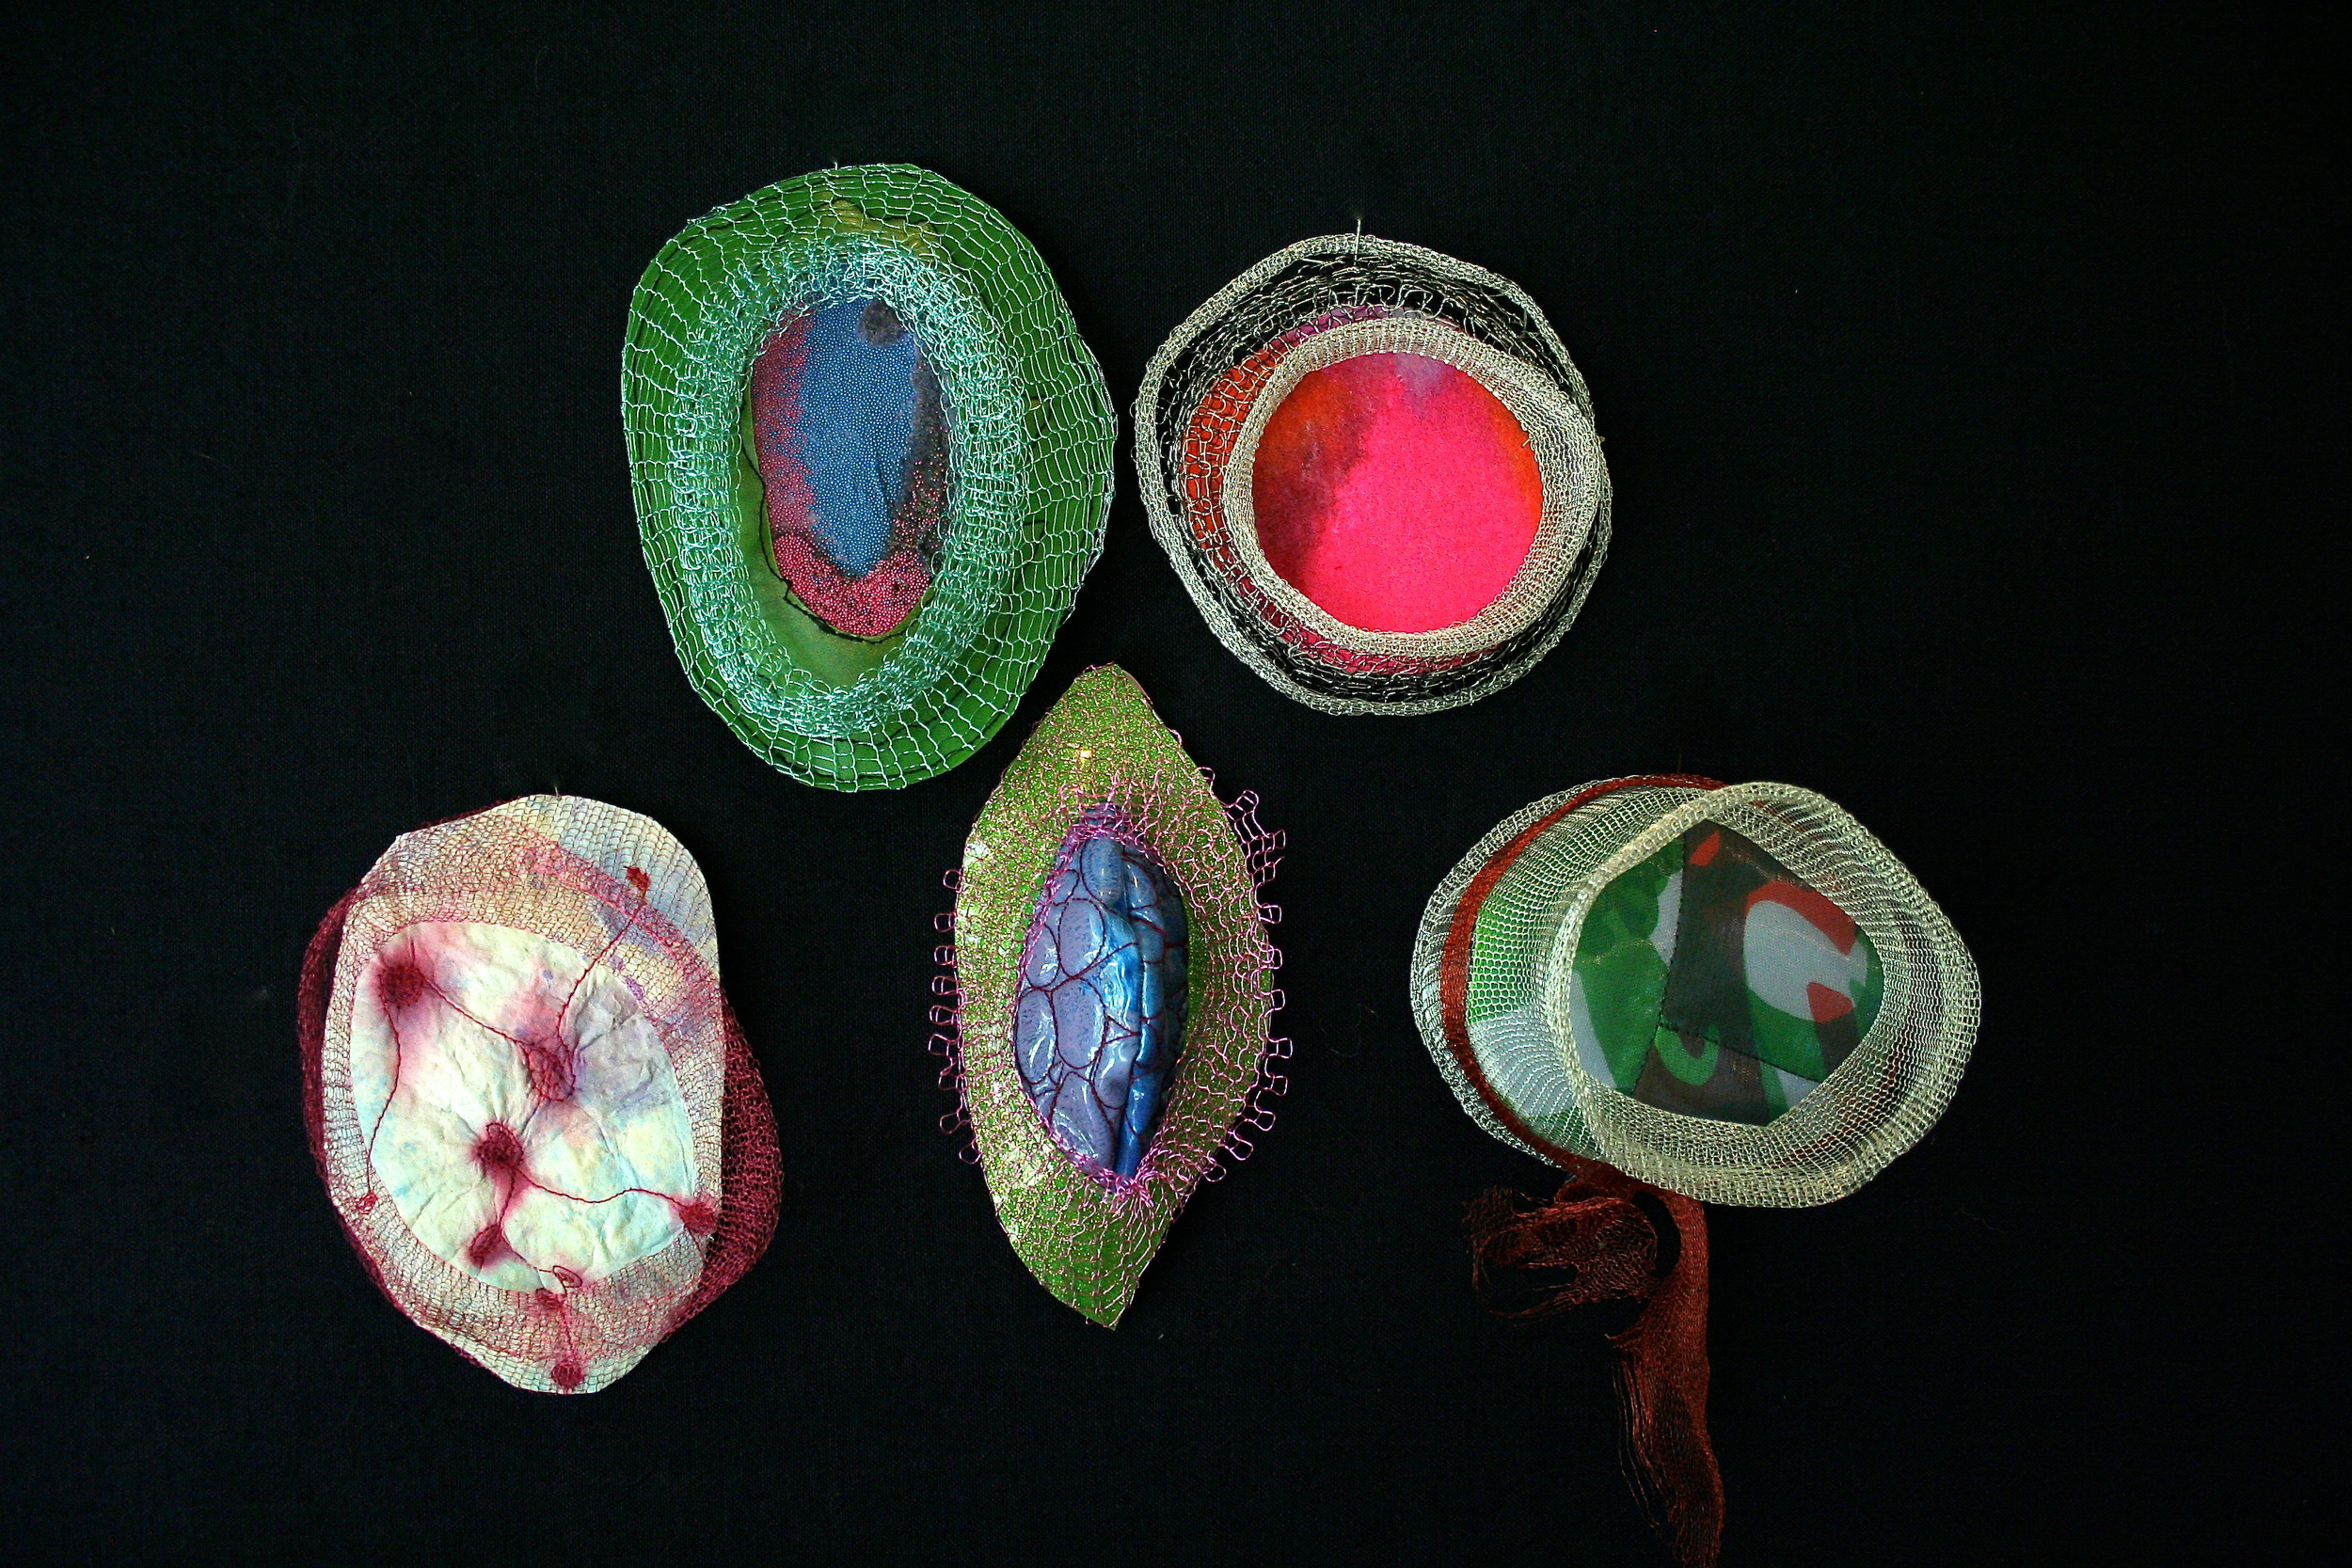 """L-R, T-B: Micro beading on vinyl with wire knit; Dyed industrial felt with wire knit; dyed paper with free motion stitching and wire knit; free motion stitching on painted vinyl with wire knit; artist's screen print on fabric, quilted, in wire knit cage                0    0    1    37    216    monaleisa    1    1    252    14.0                          Normal    0                false    false    false       EN-US    JA    X-NONE                                                                                                                                                                                                                                                                                                                                                                                                                                                                                                                                                  /* Style Definitions */ table.MsoNormalTable {mso-style-name:""""Table Normal""""; mso-tstyle-rowband-size:0; mso-tstyle-colband-size:0; mso-style-noshow:yes; mso-style-priority:99; mso-style-parent:""""""""; mso-padding-alt:0in 5.4pt 0in 5.4pt; mso-para-margin:0in; mso-para-margin-bottom:.0001pt; mso-pagination:widow-orphan; font-size:10.0pt; font-family:Cambria; mso-ascii-font-family:Cambria; mso-ascii-theme-font:minor-latin; mso-hansi-font-family:Cambria; mso-hansi-theme-font:minor-latin; mso-fareast-language:JA;}"""